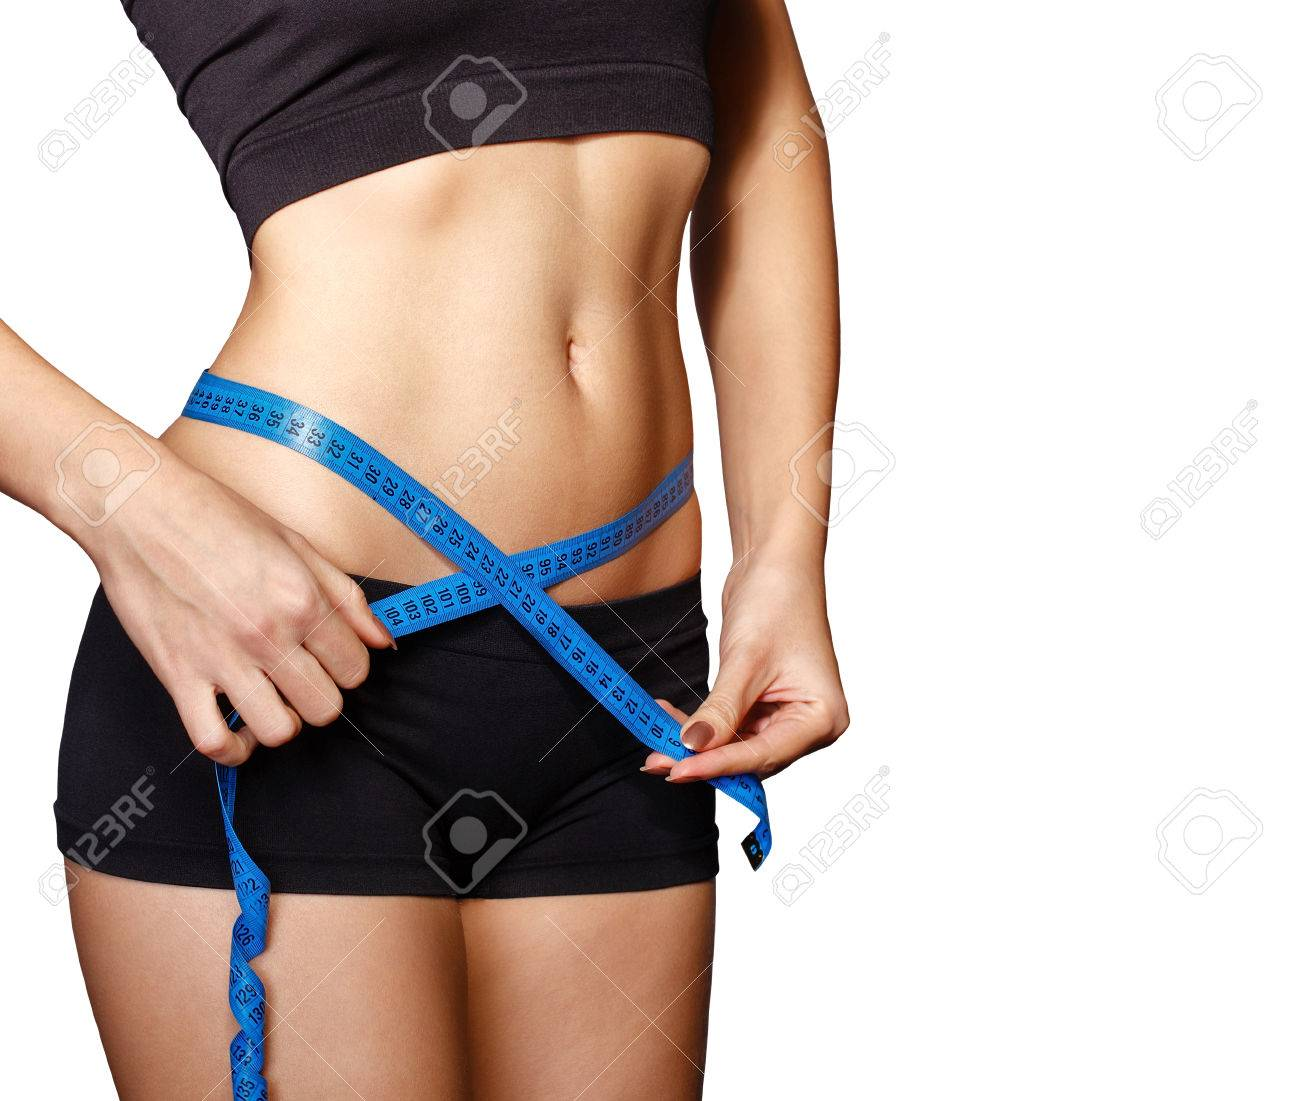 Fit and healthy young lady measuring her waist with a tape measure in centimeters and millimeters. She has her black gym exercise outfit on. Isolated image on white. - 36586653